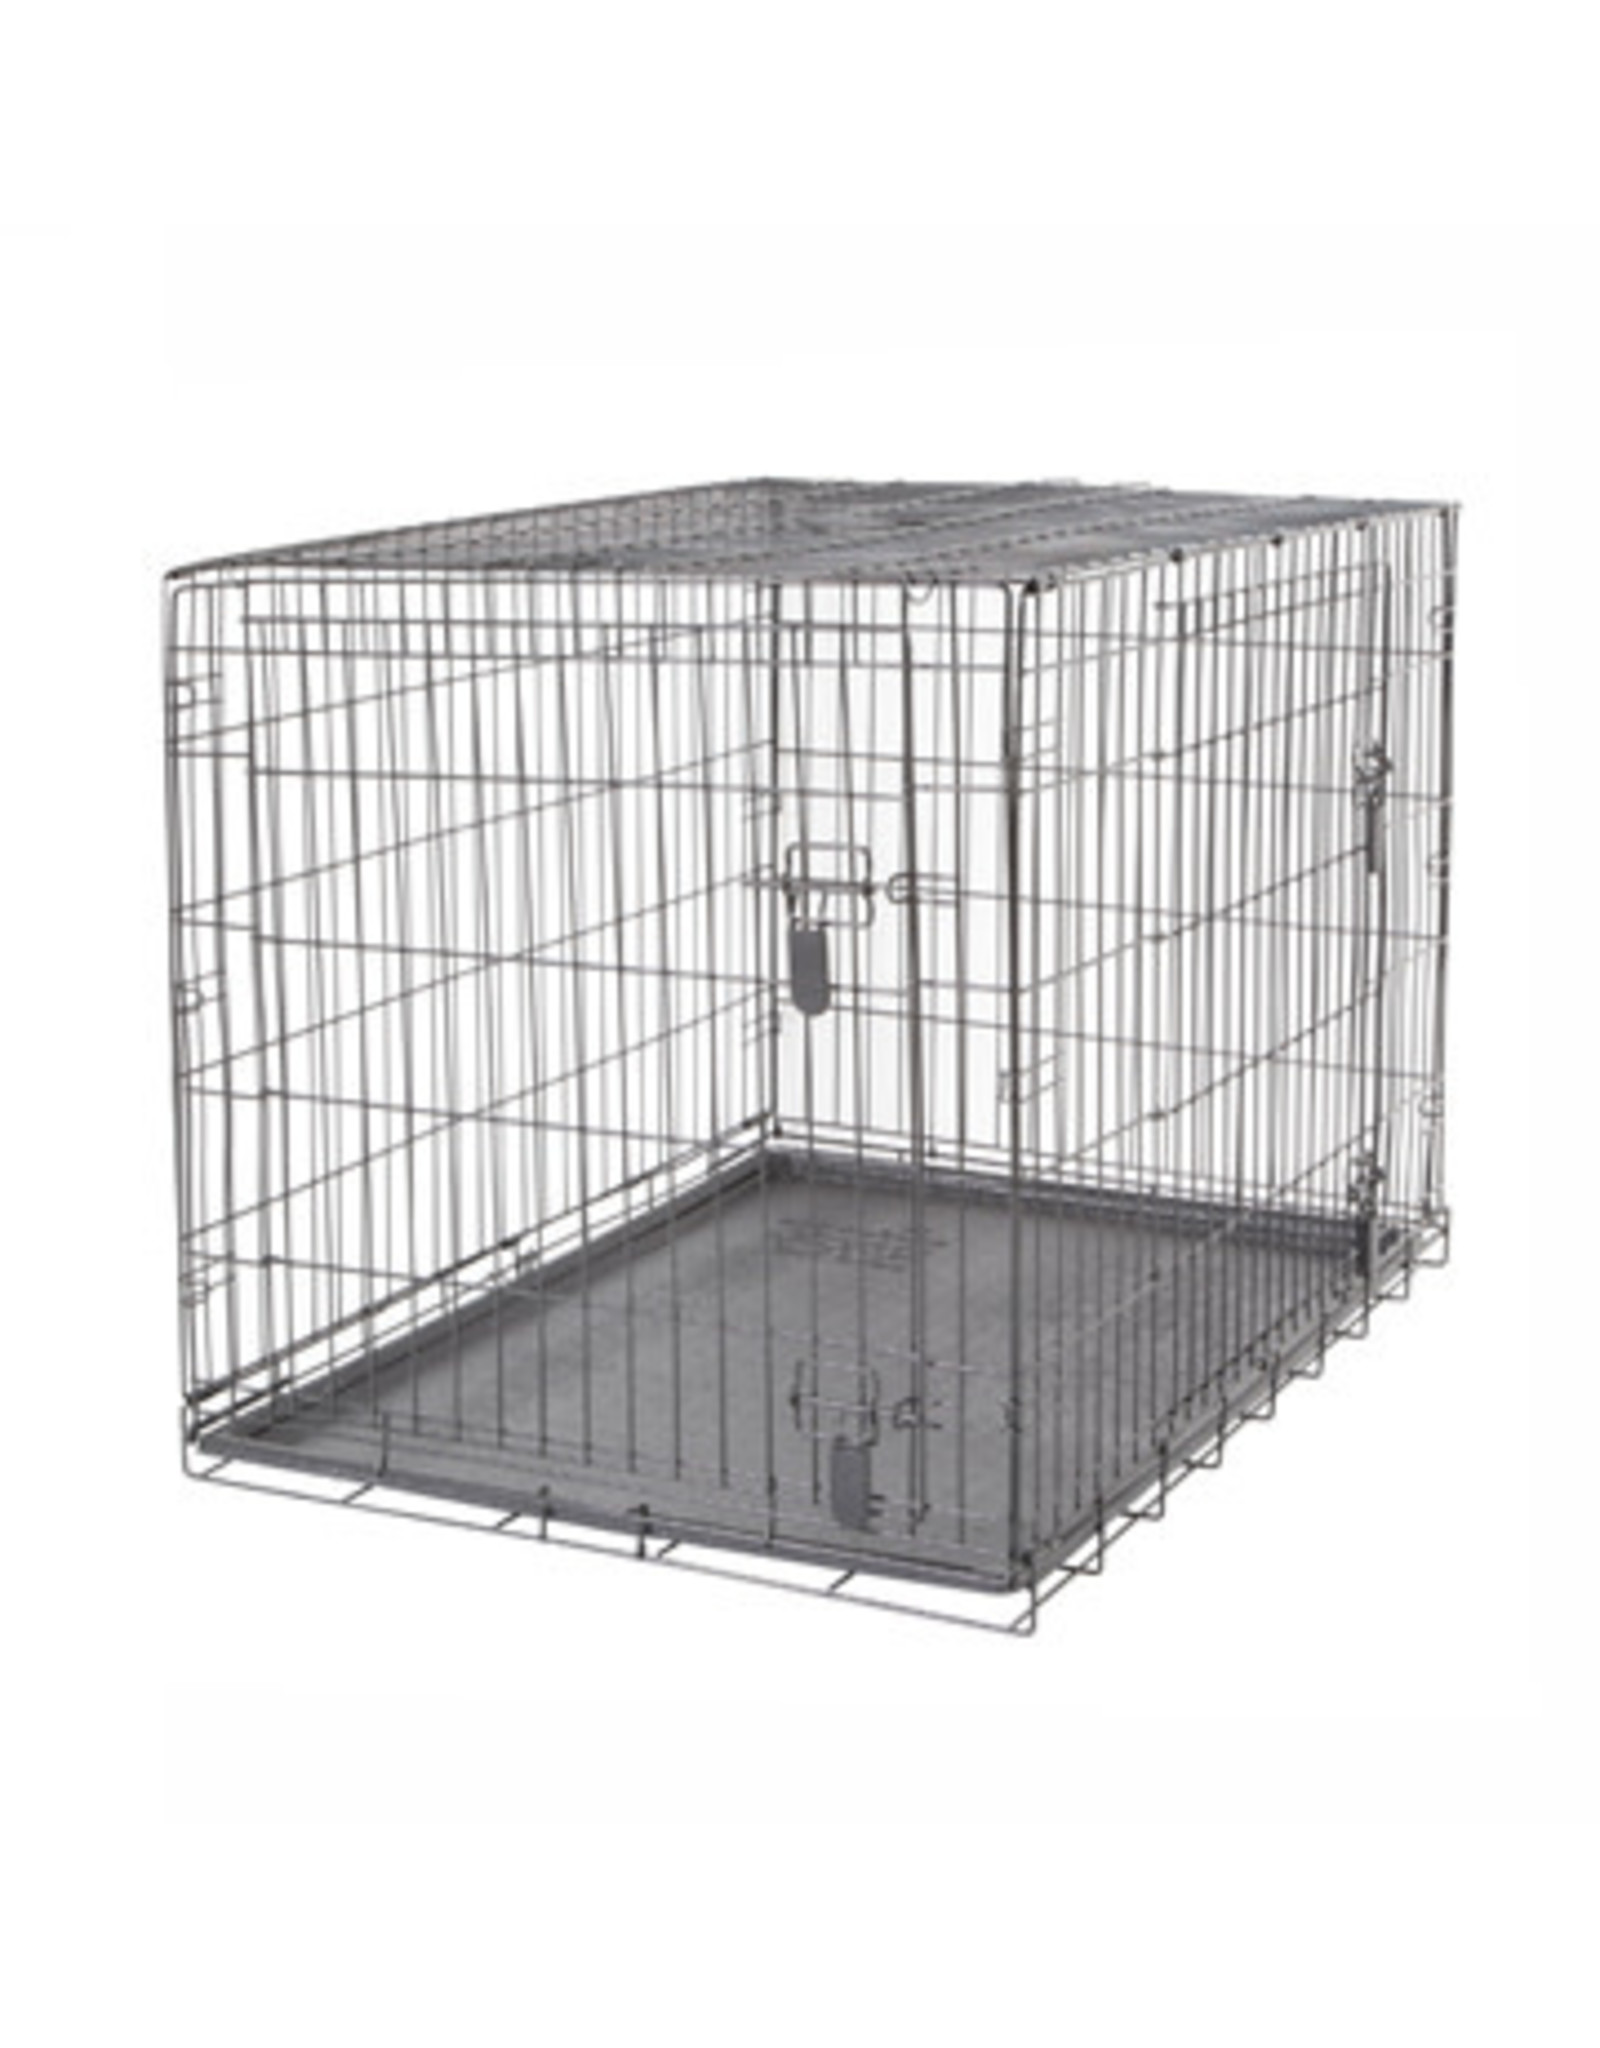 "DogIt Two Door Wire Crates with Divider XXLarge 122.5x74.5x80.5cm (48x29.3x31.5"")"